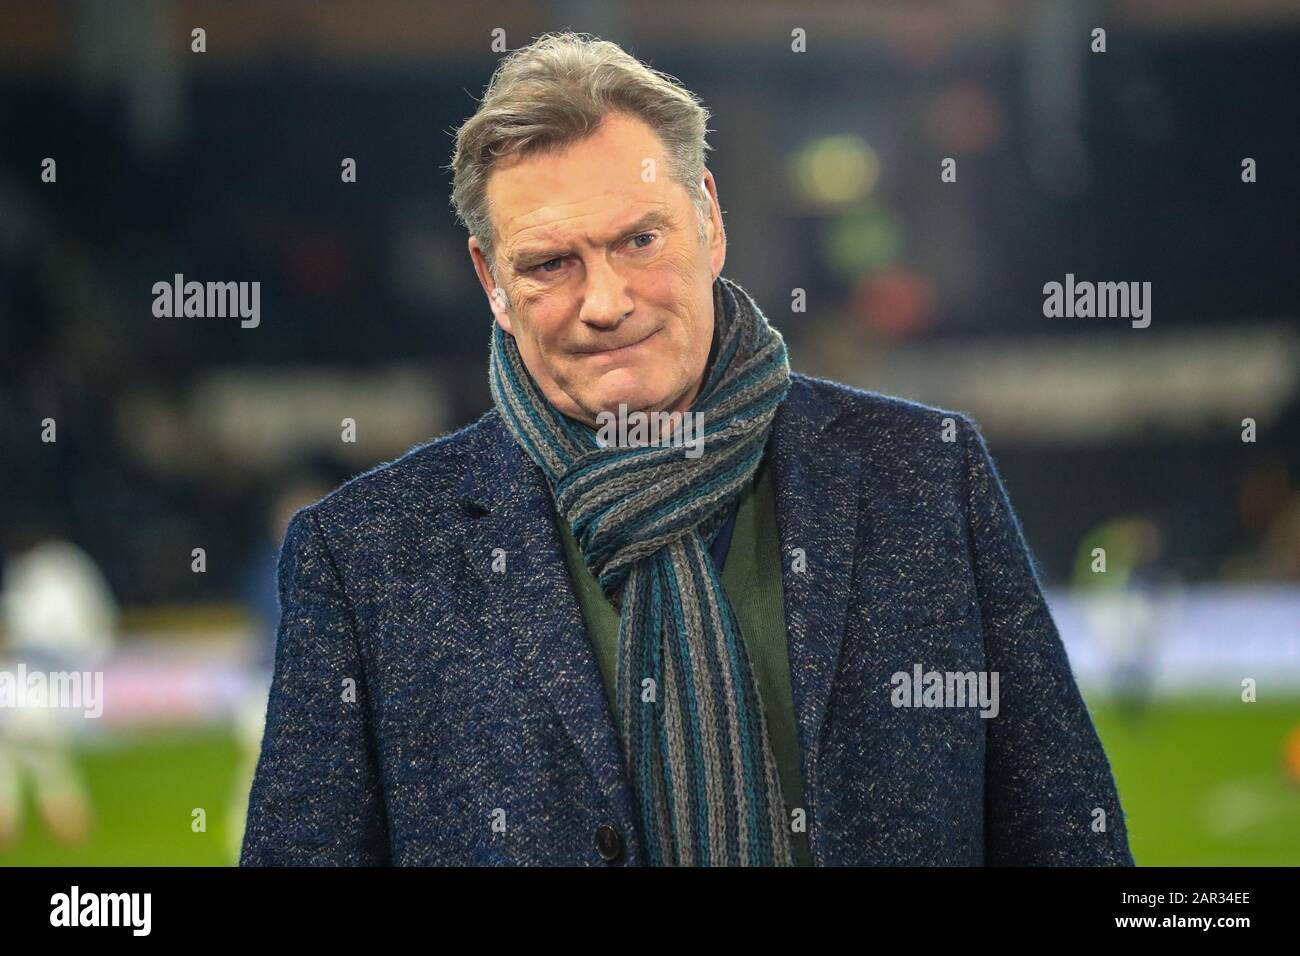 Glenn Hoddle High Resolution Stock Photography And Images Alamy